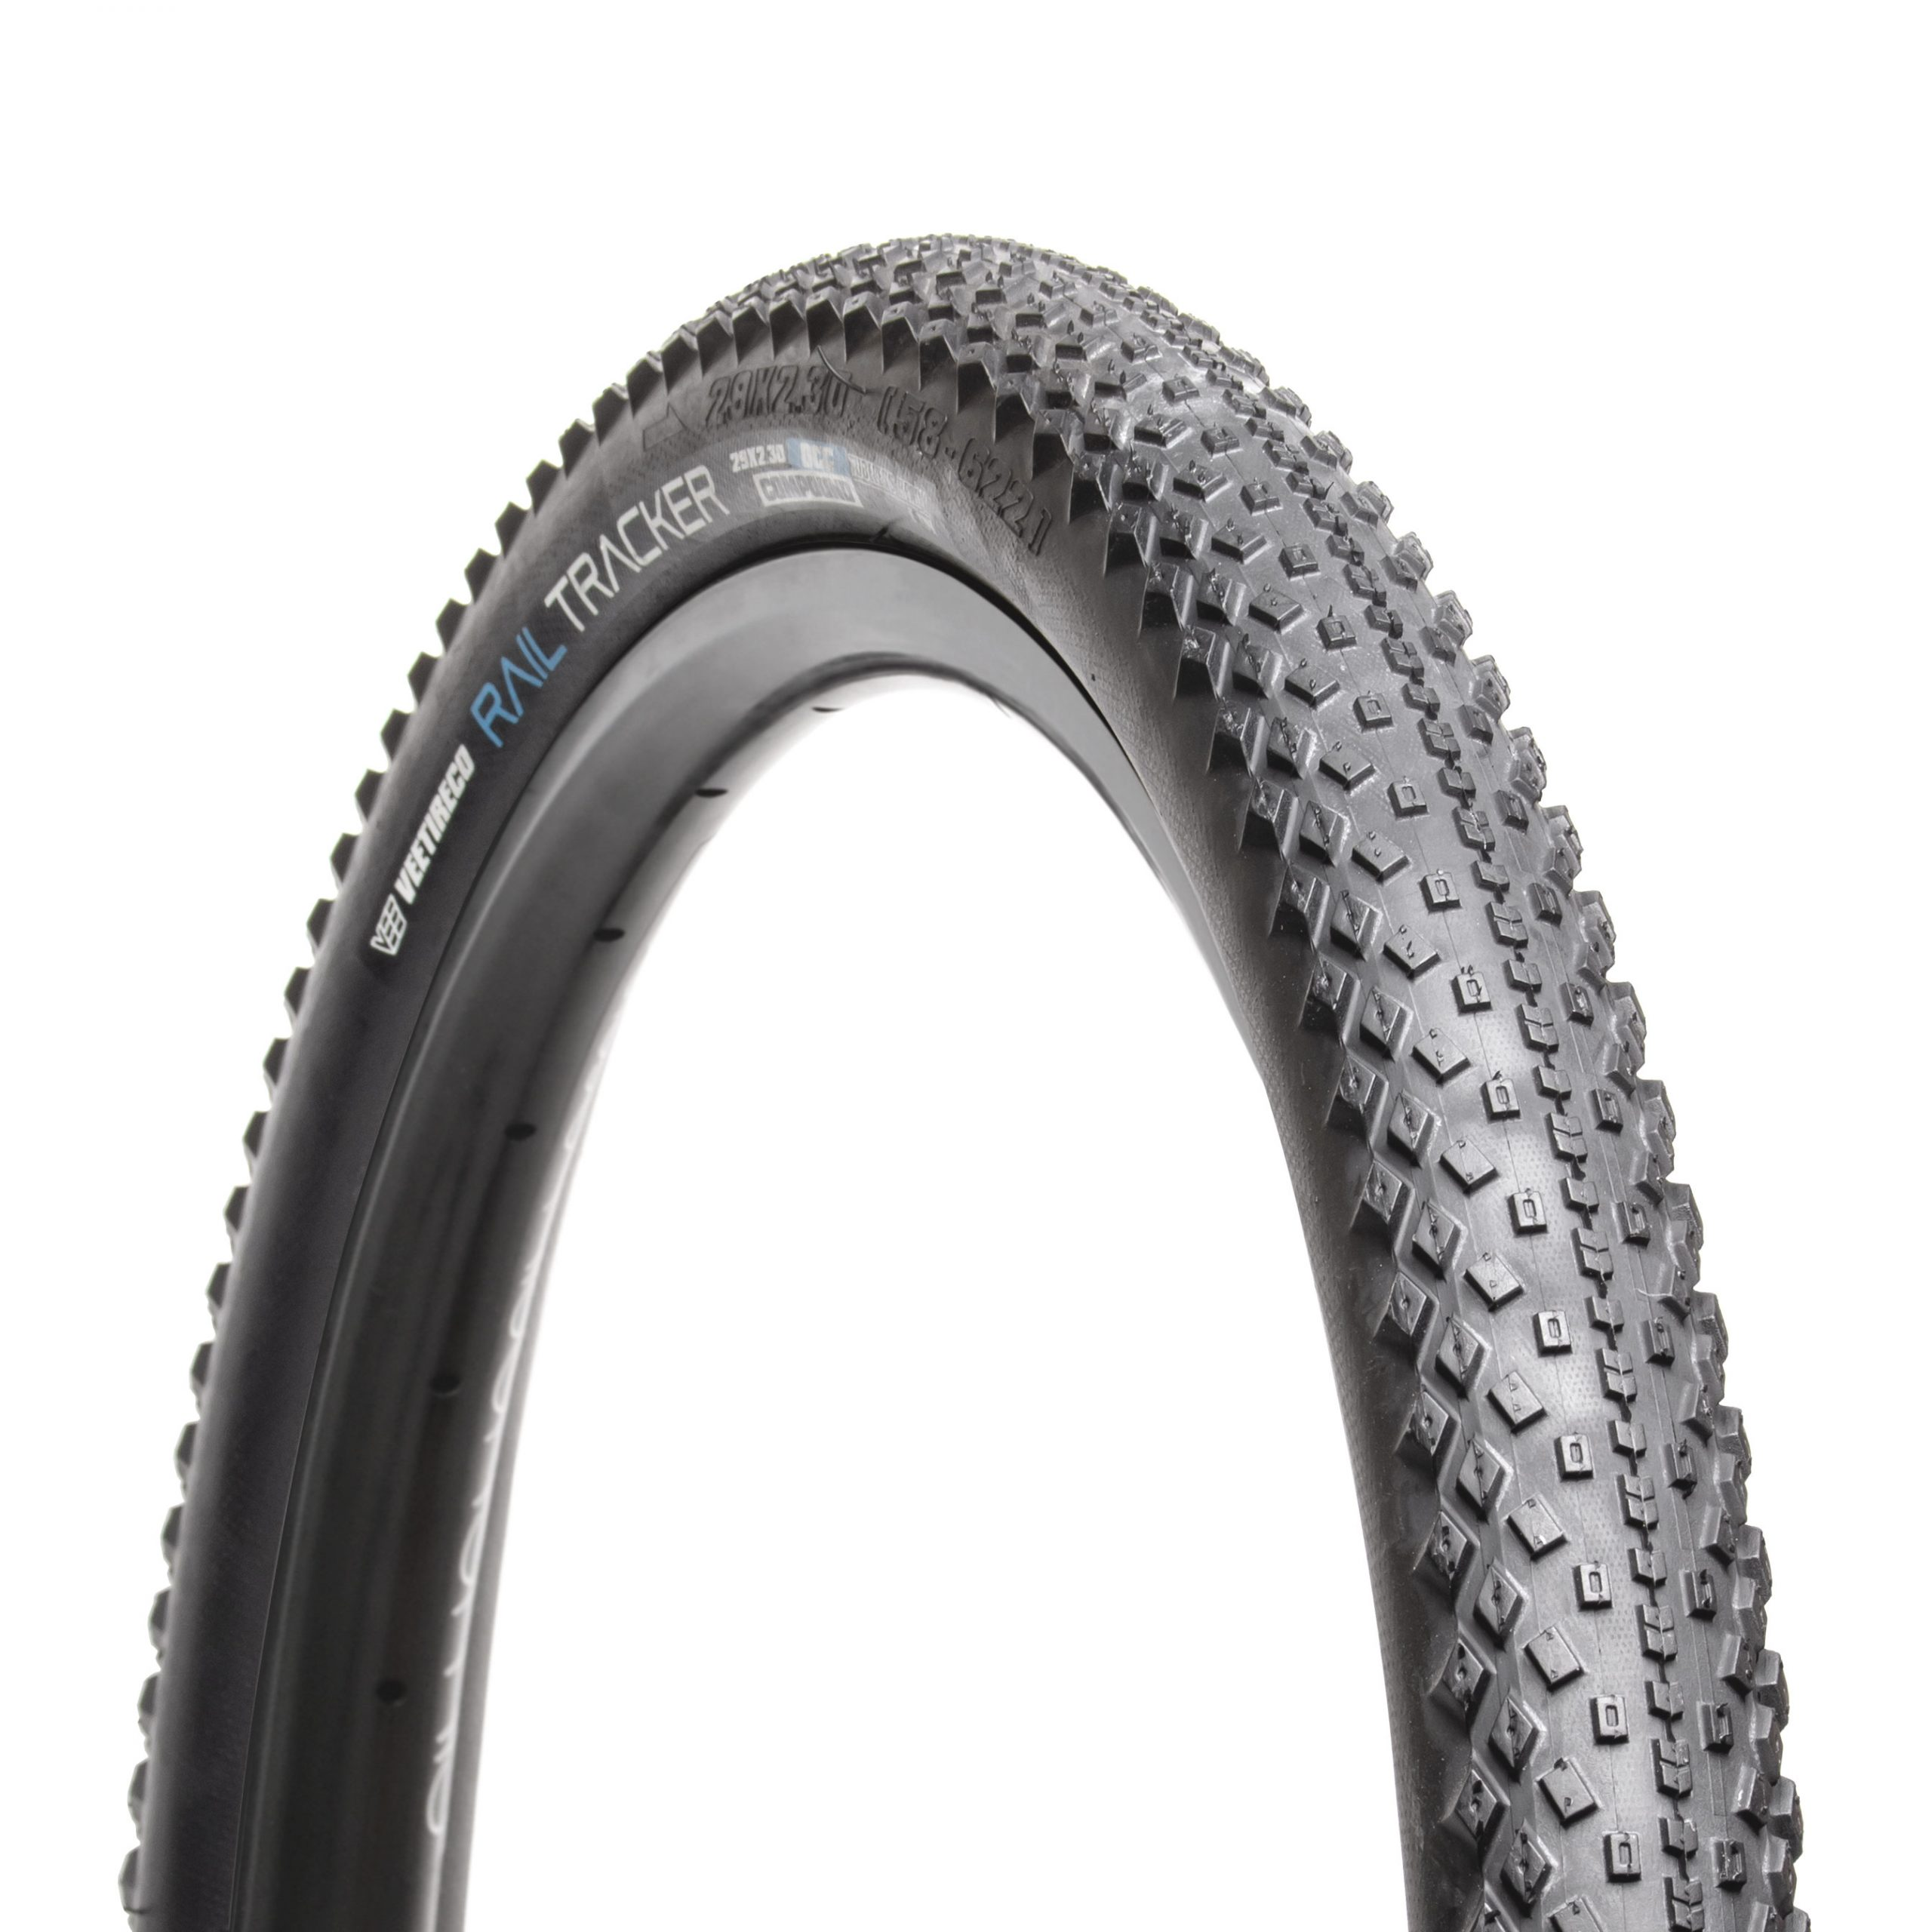 2 Vee Tire Rail Tracker 27.5x2.2 Tires Synthesis Sidewall Dual Control Compound